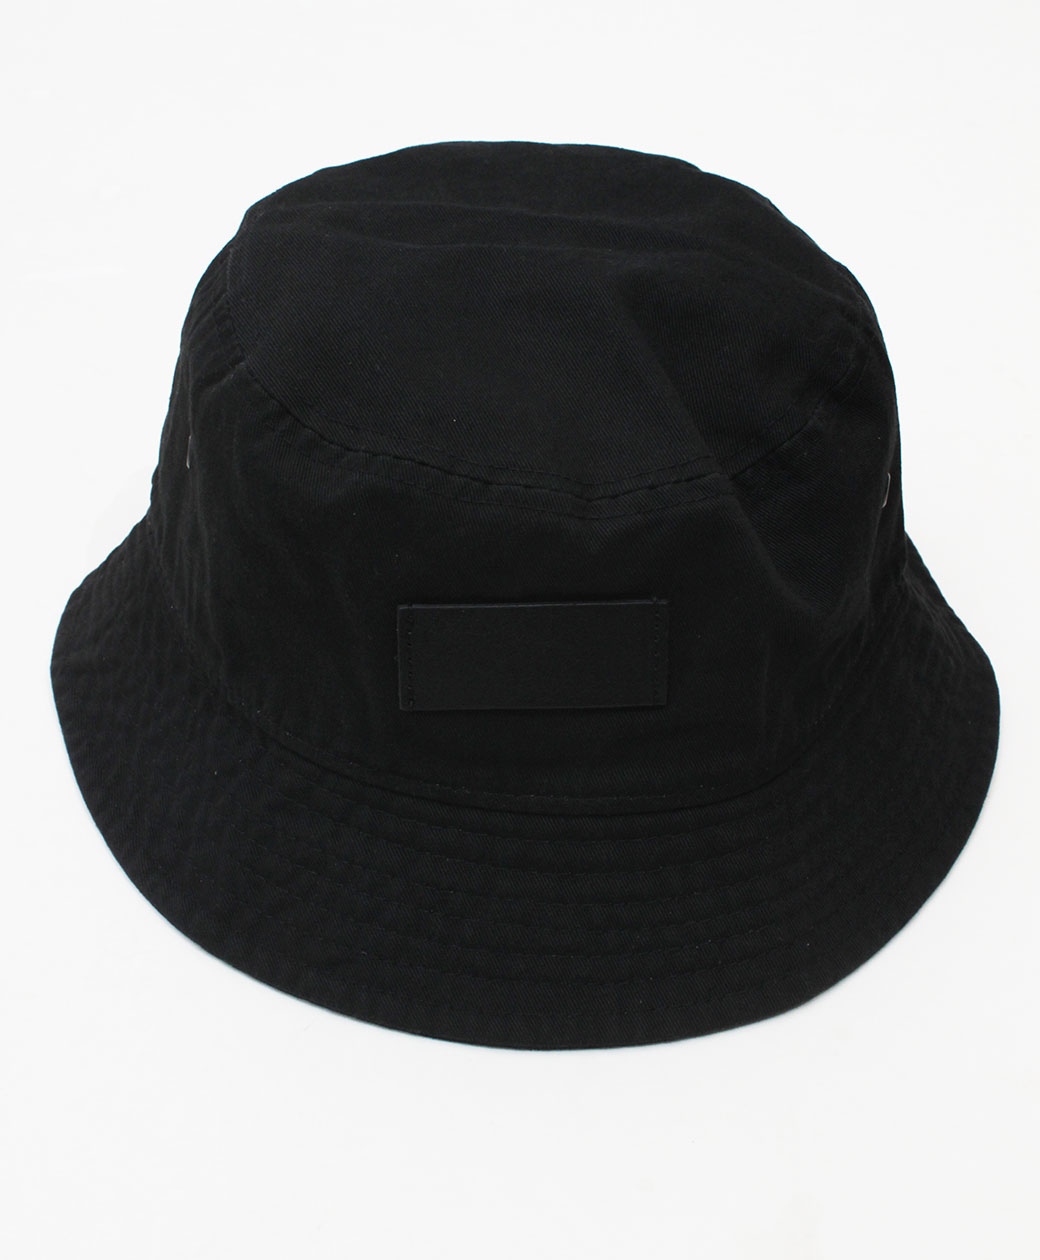 hobo COTTON TWILL BUCKET HAT(BLACK)